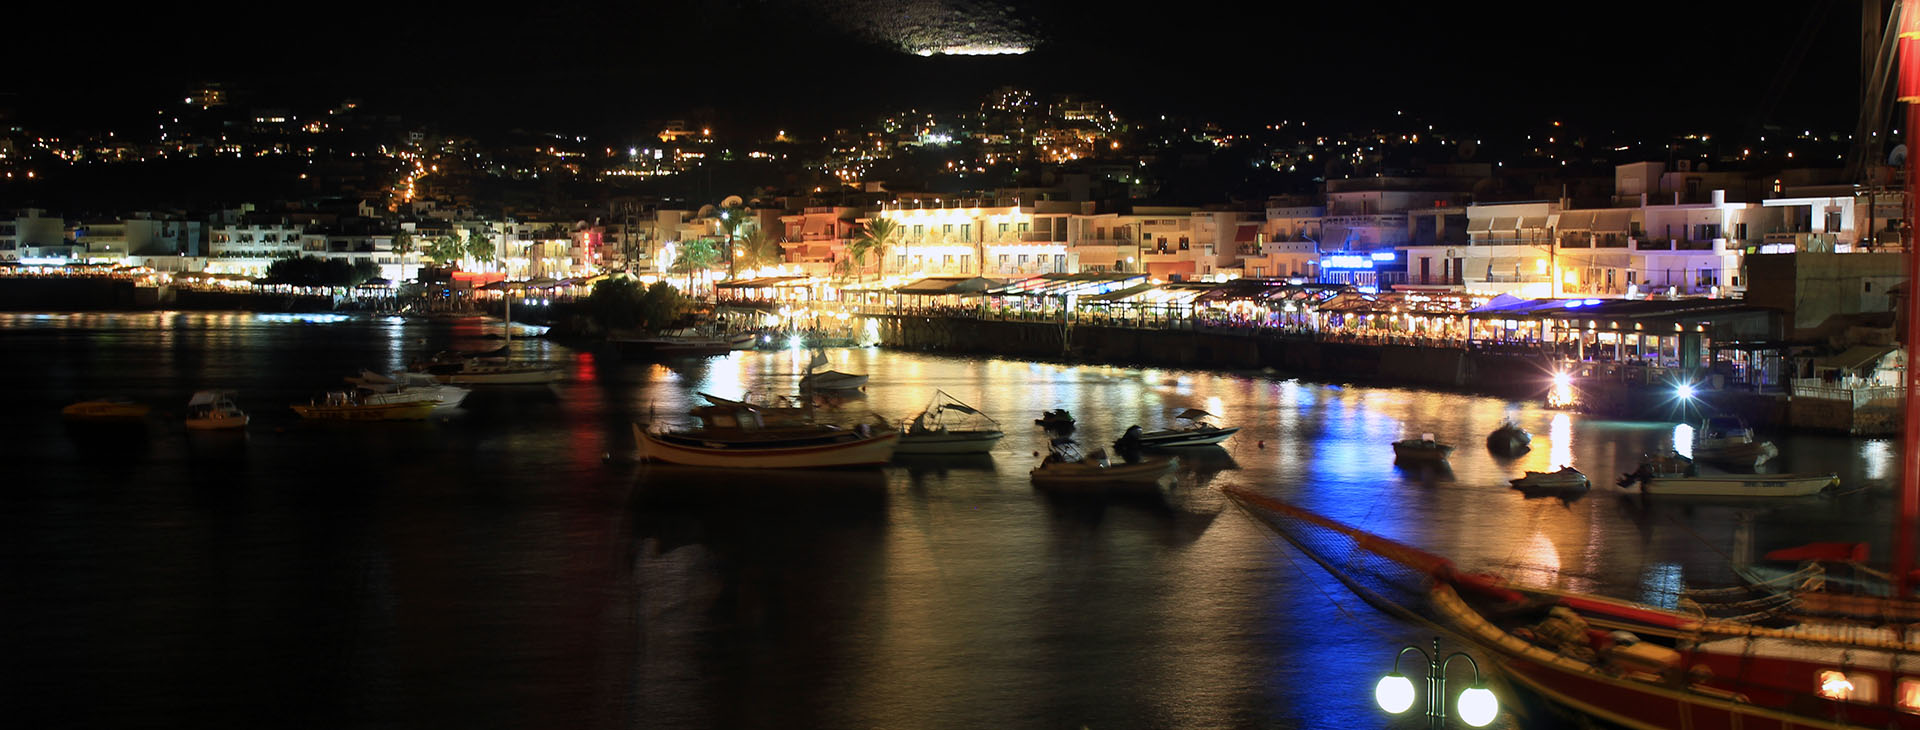 Hersonissos by night, Heraklion